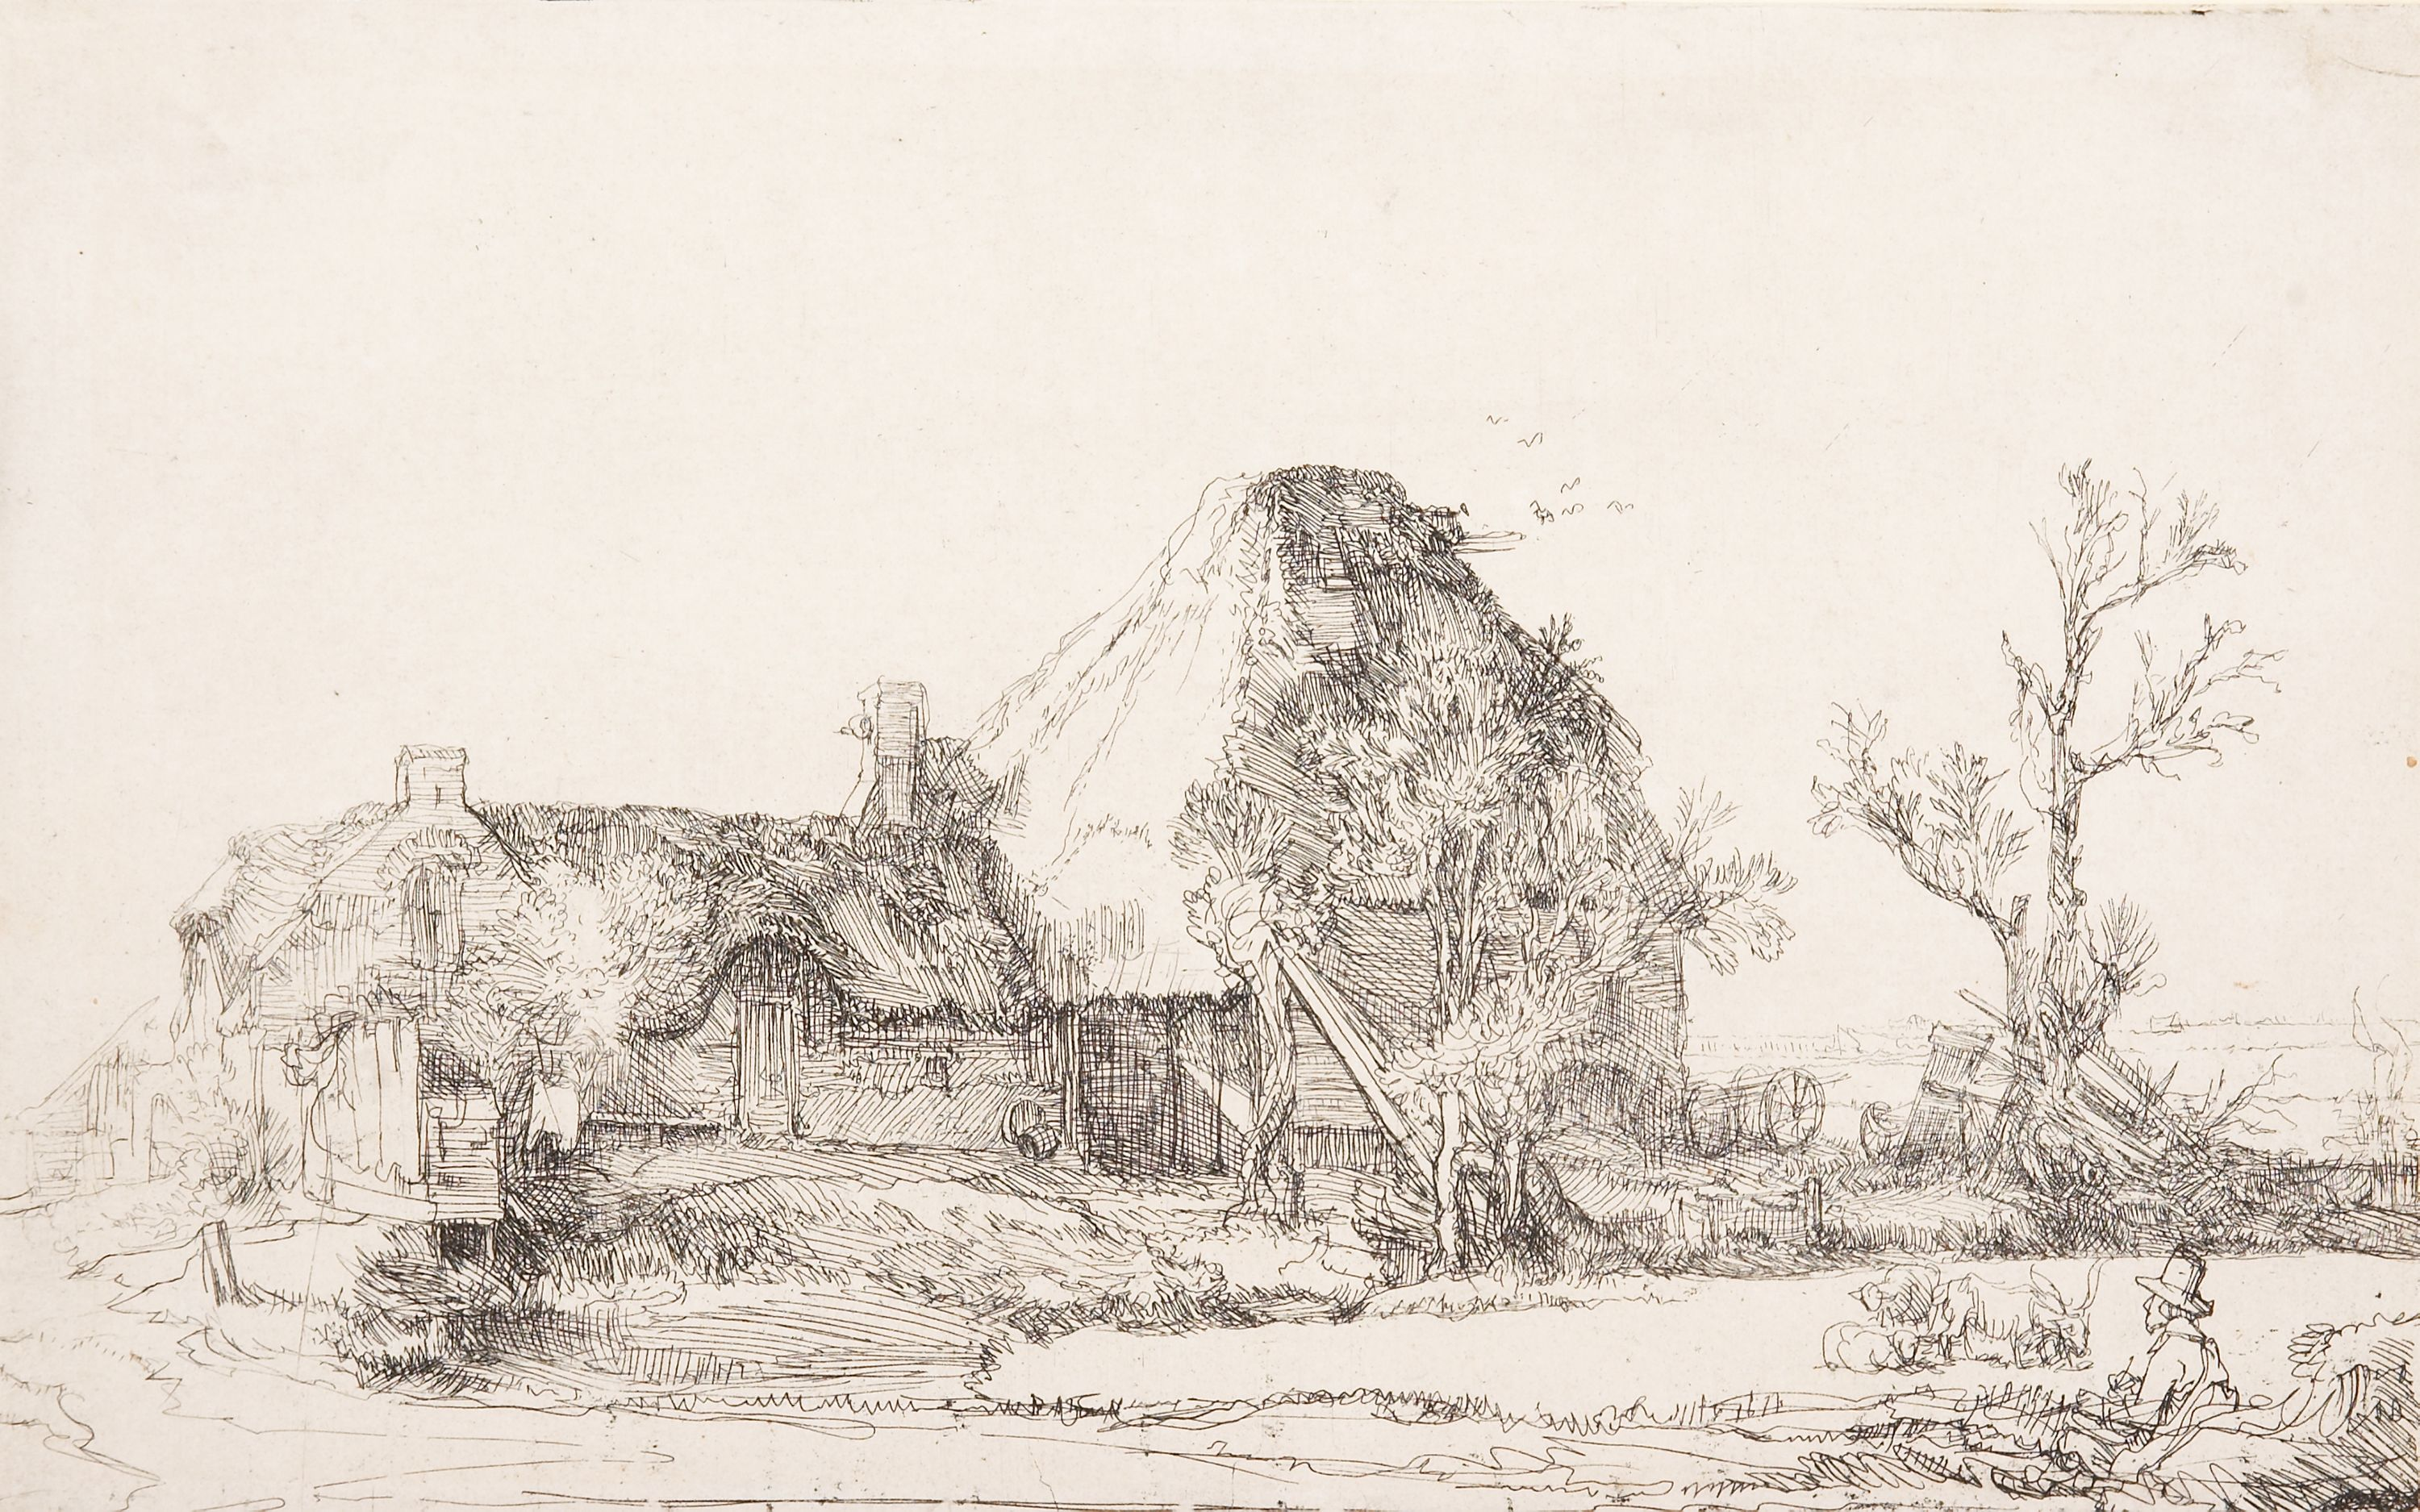 """Farmhouse with Artist Sketching"" Rembrandt van Rijn (Netherlands, 1606-1669), etching (single state), print. 1957.101."